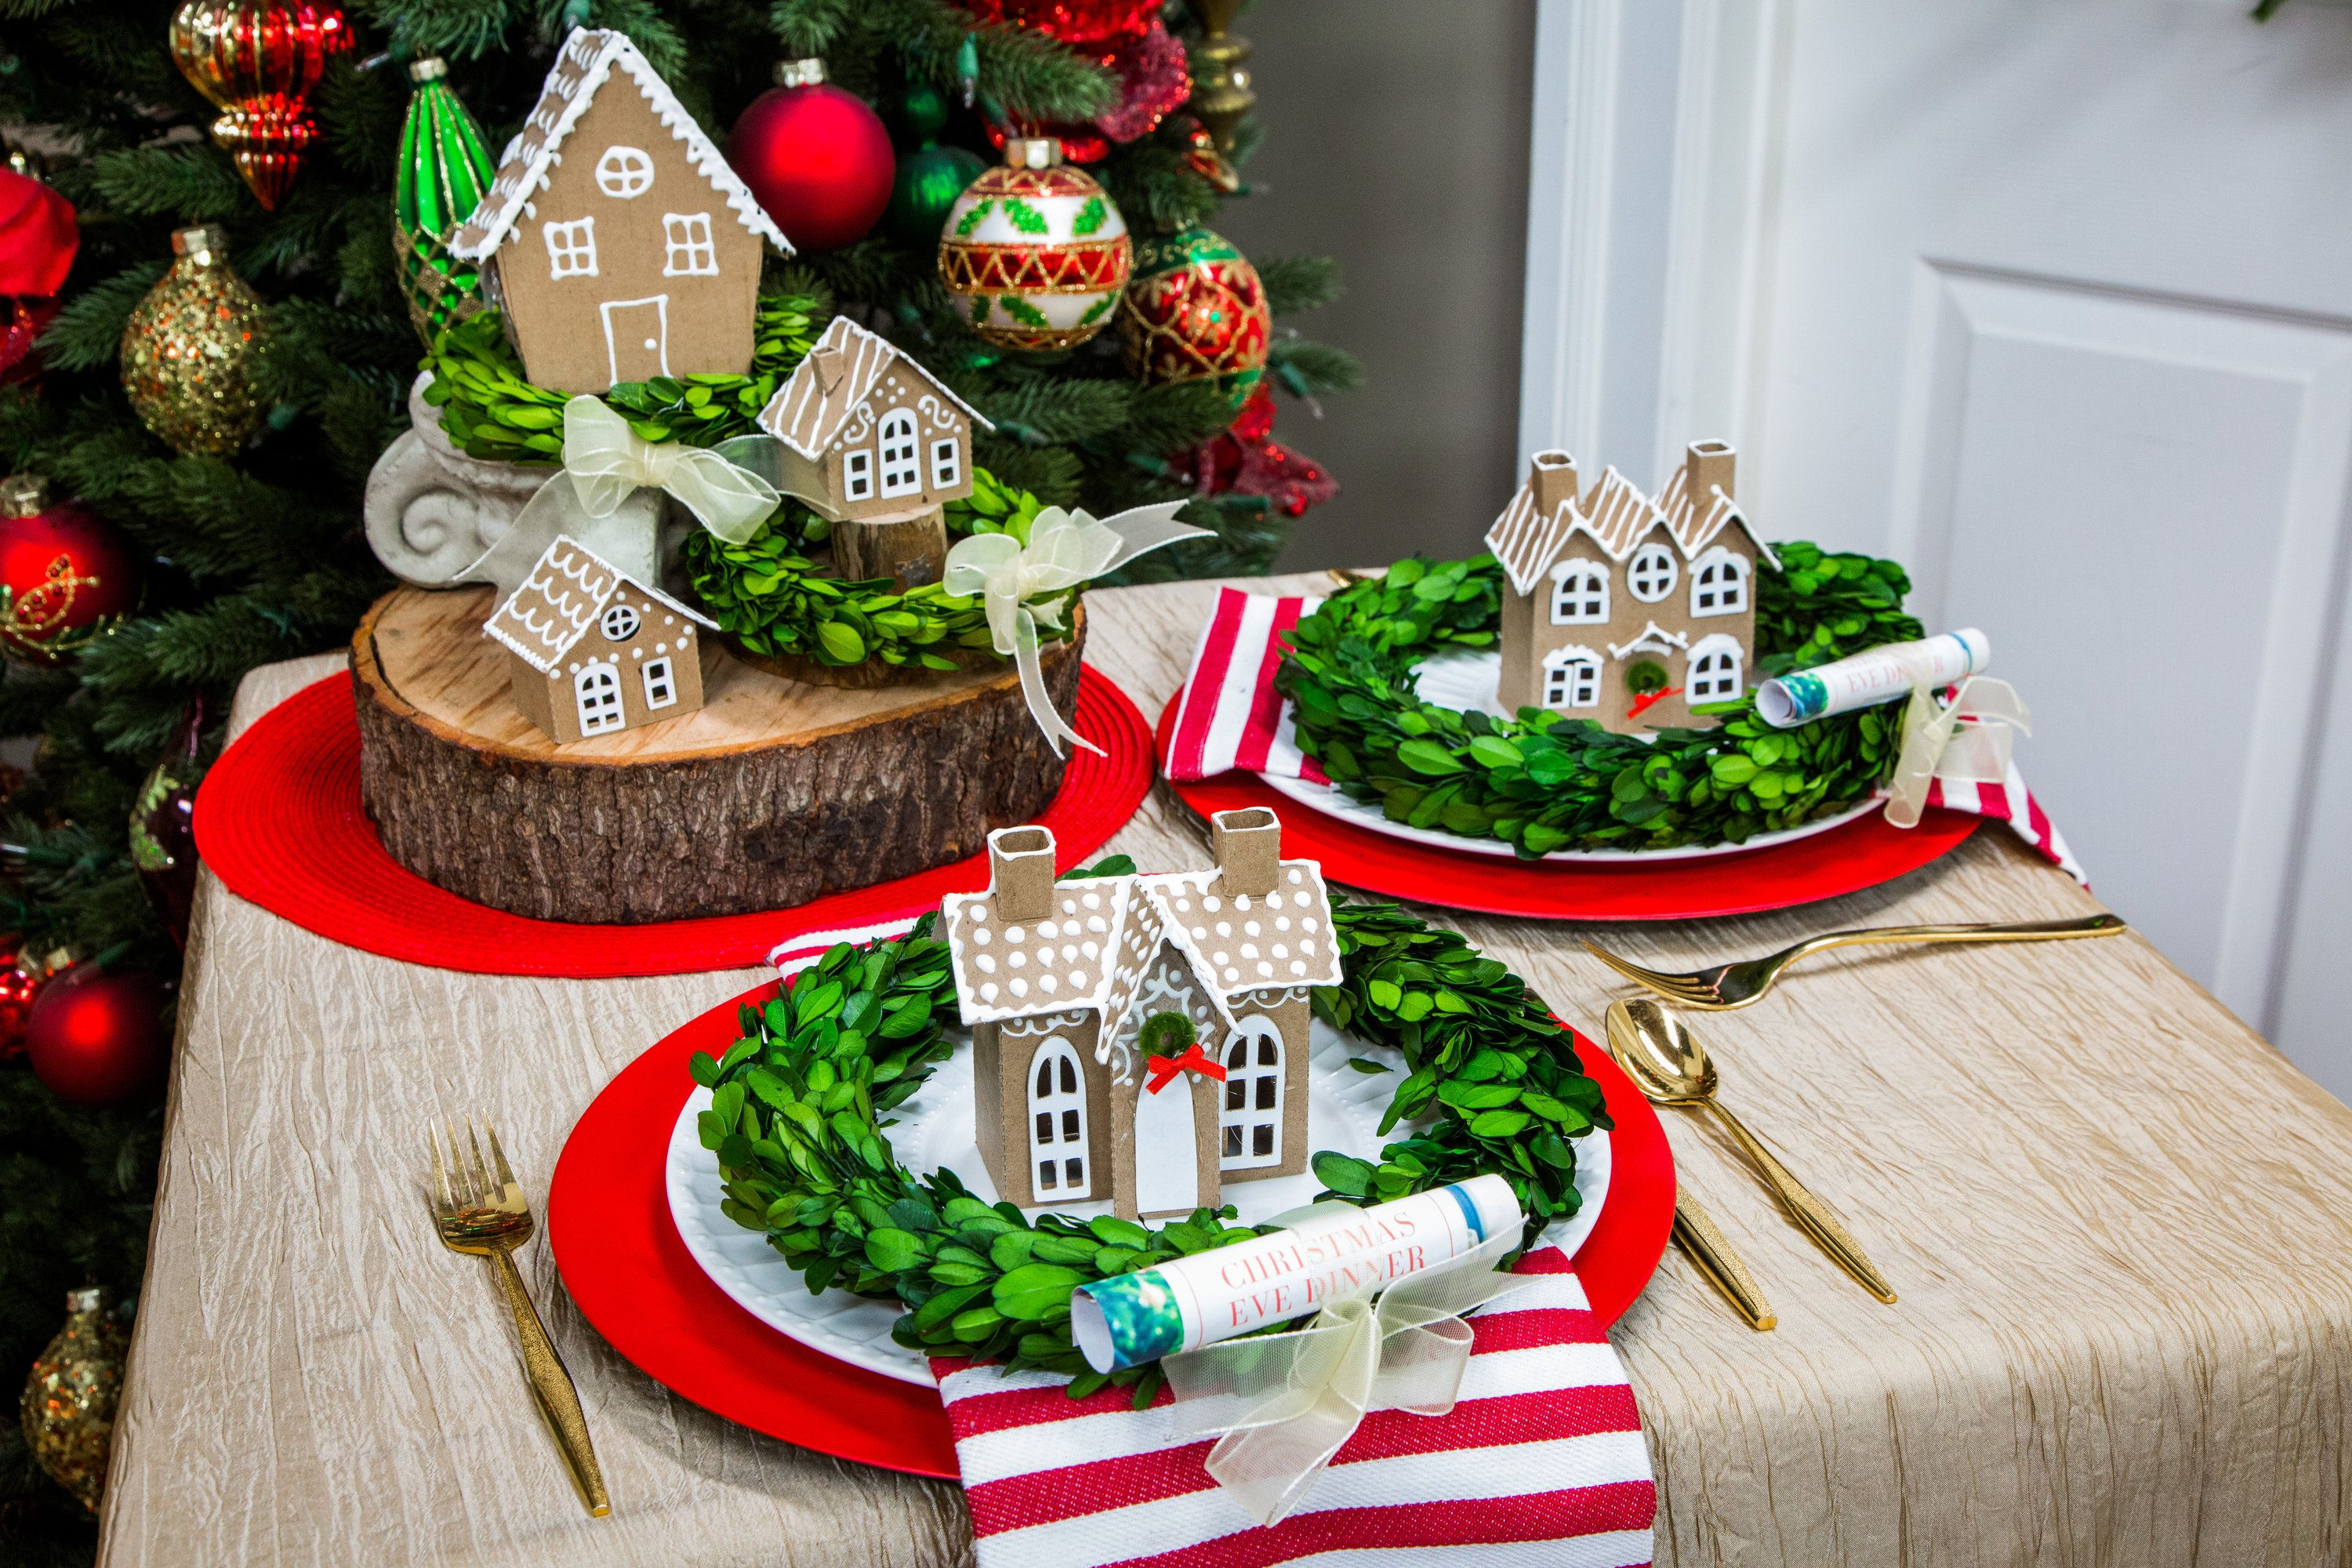 252bd3223f3a Maria Provenzano is getting into the Christmas spirit with these adorable  place settings.